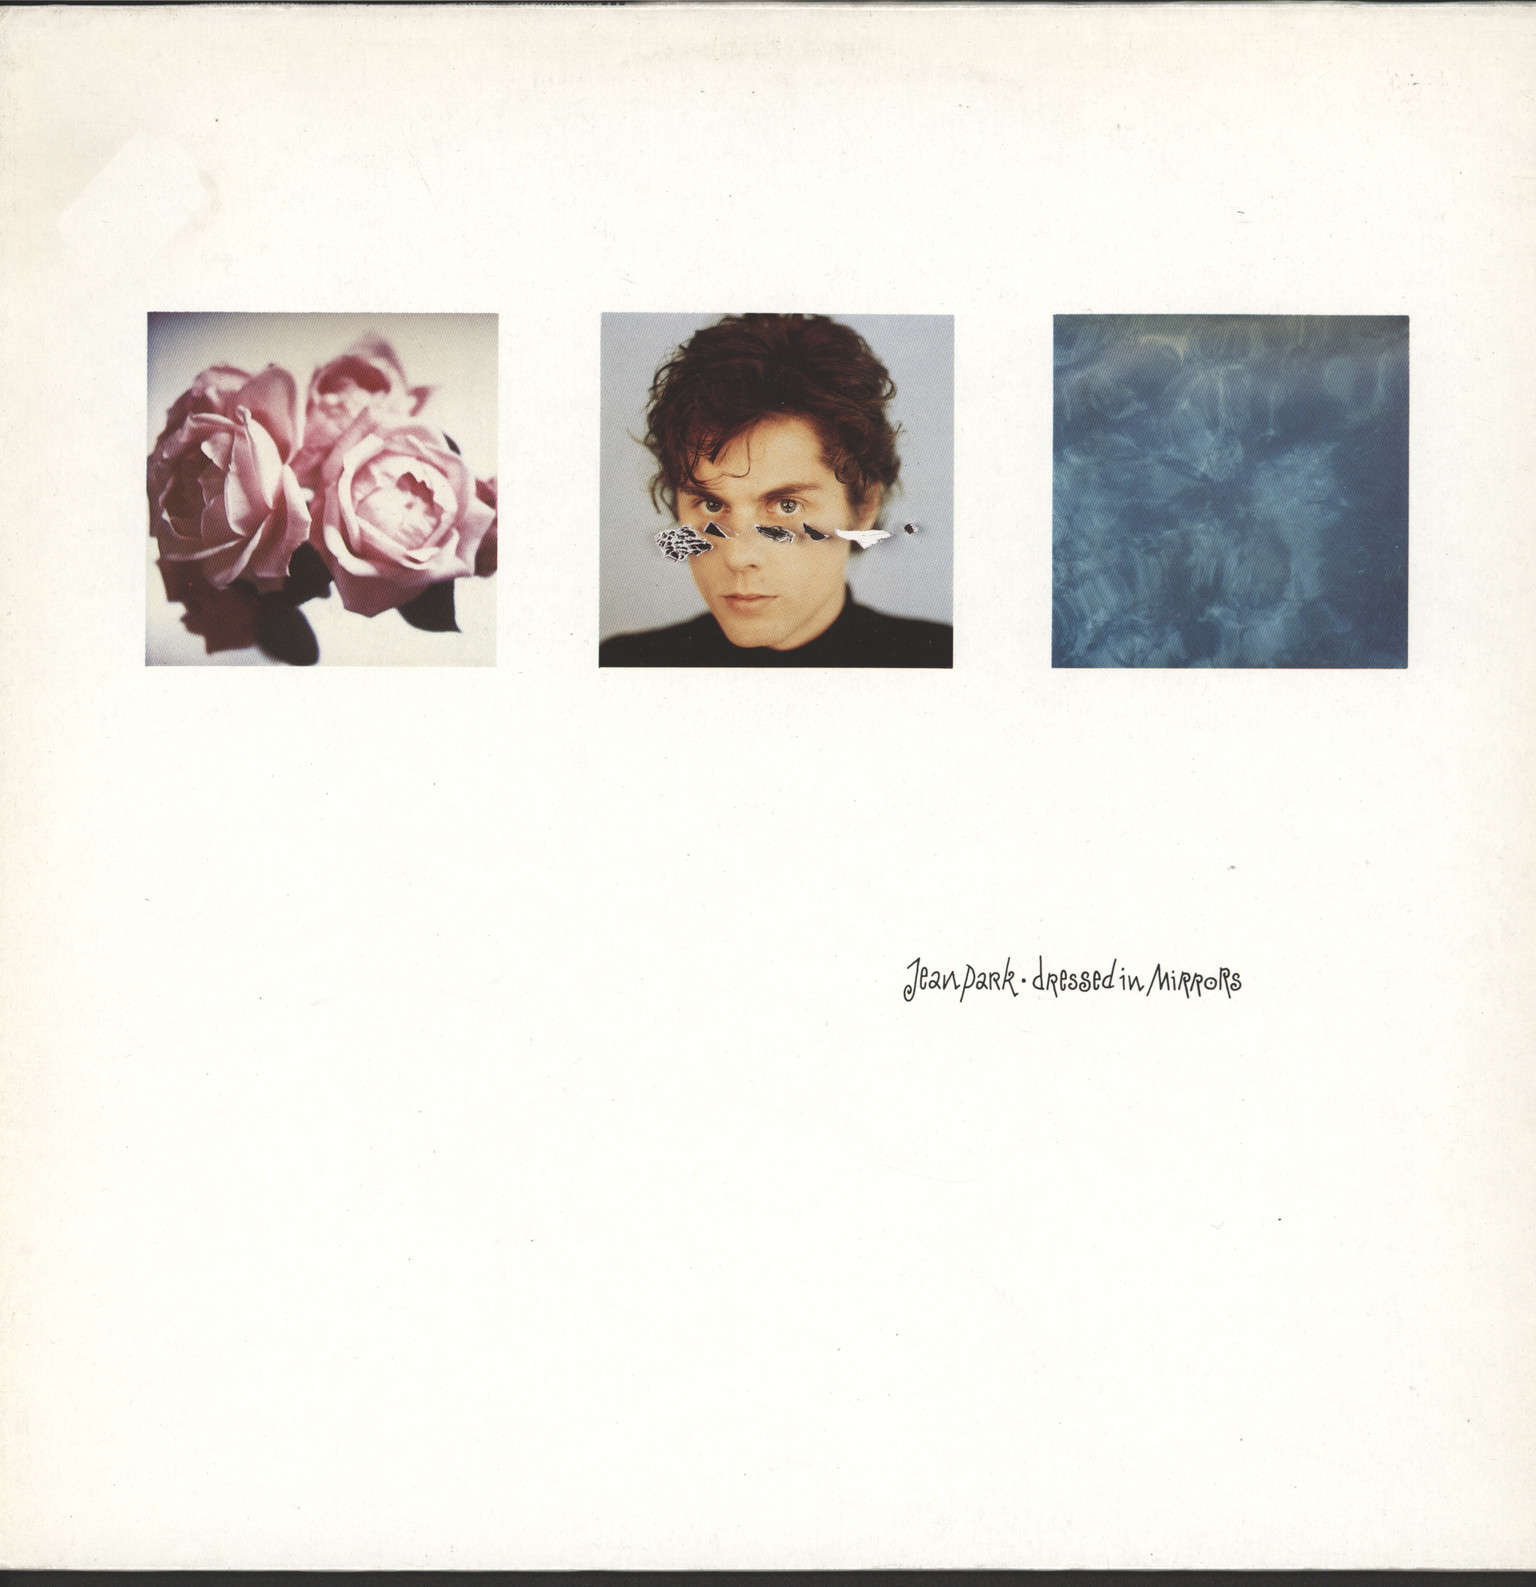 Jean Park: Dressed In Mirrors, LP (Vinyl)